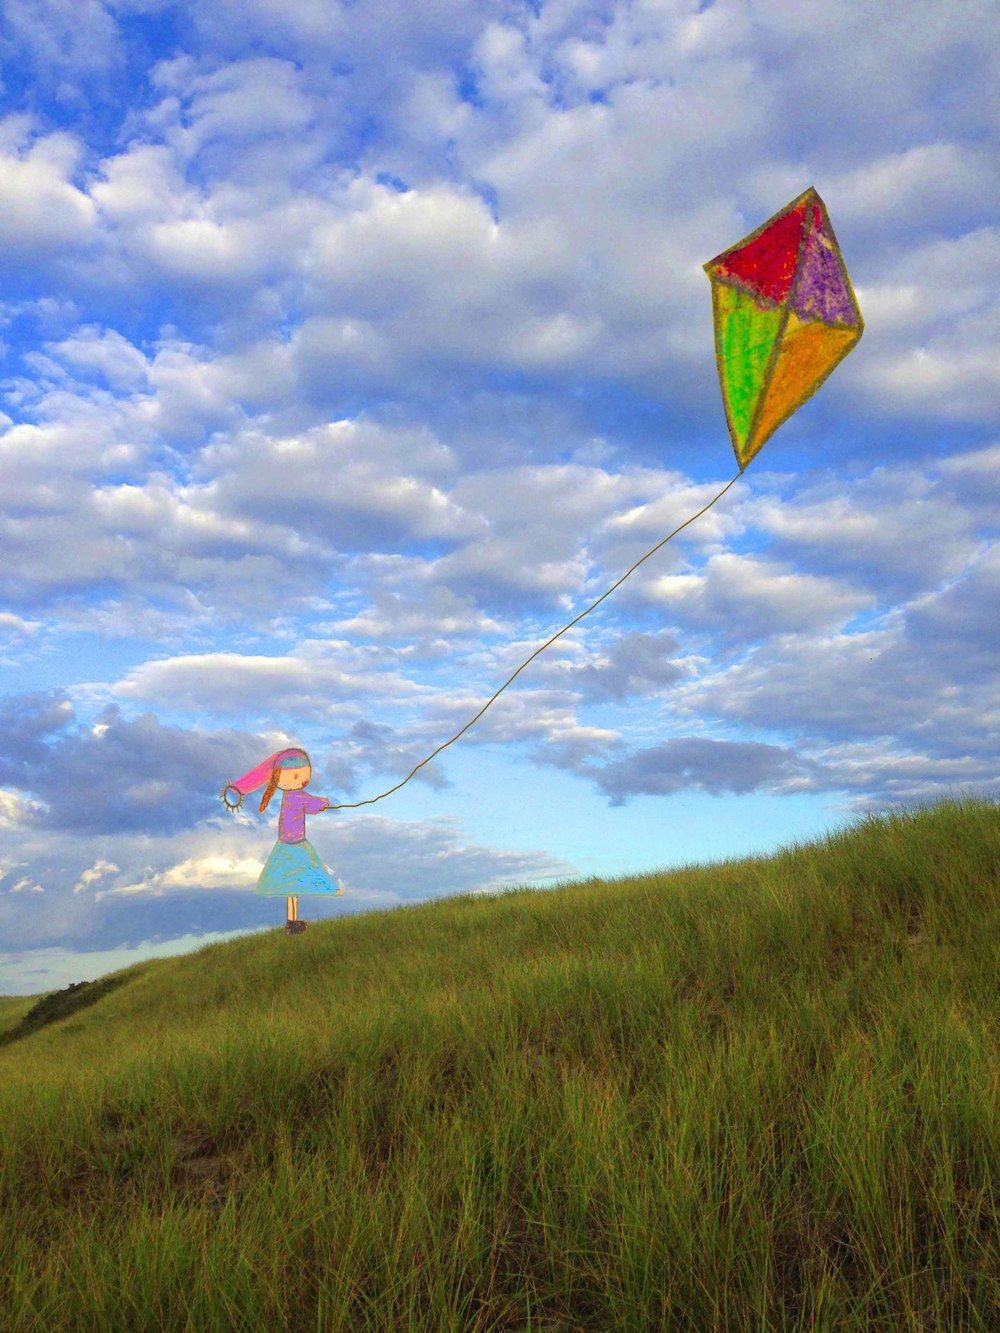 Low Res Girl with a Big Kite.jpg